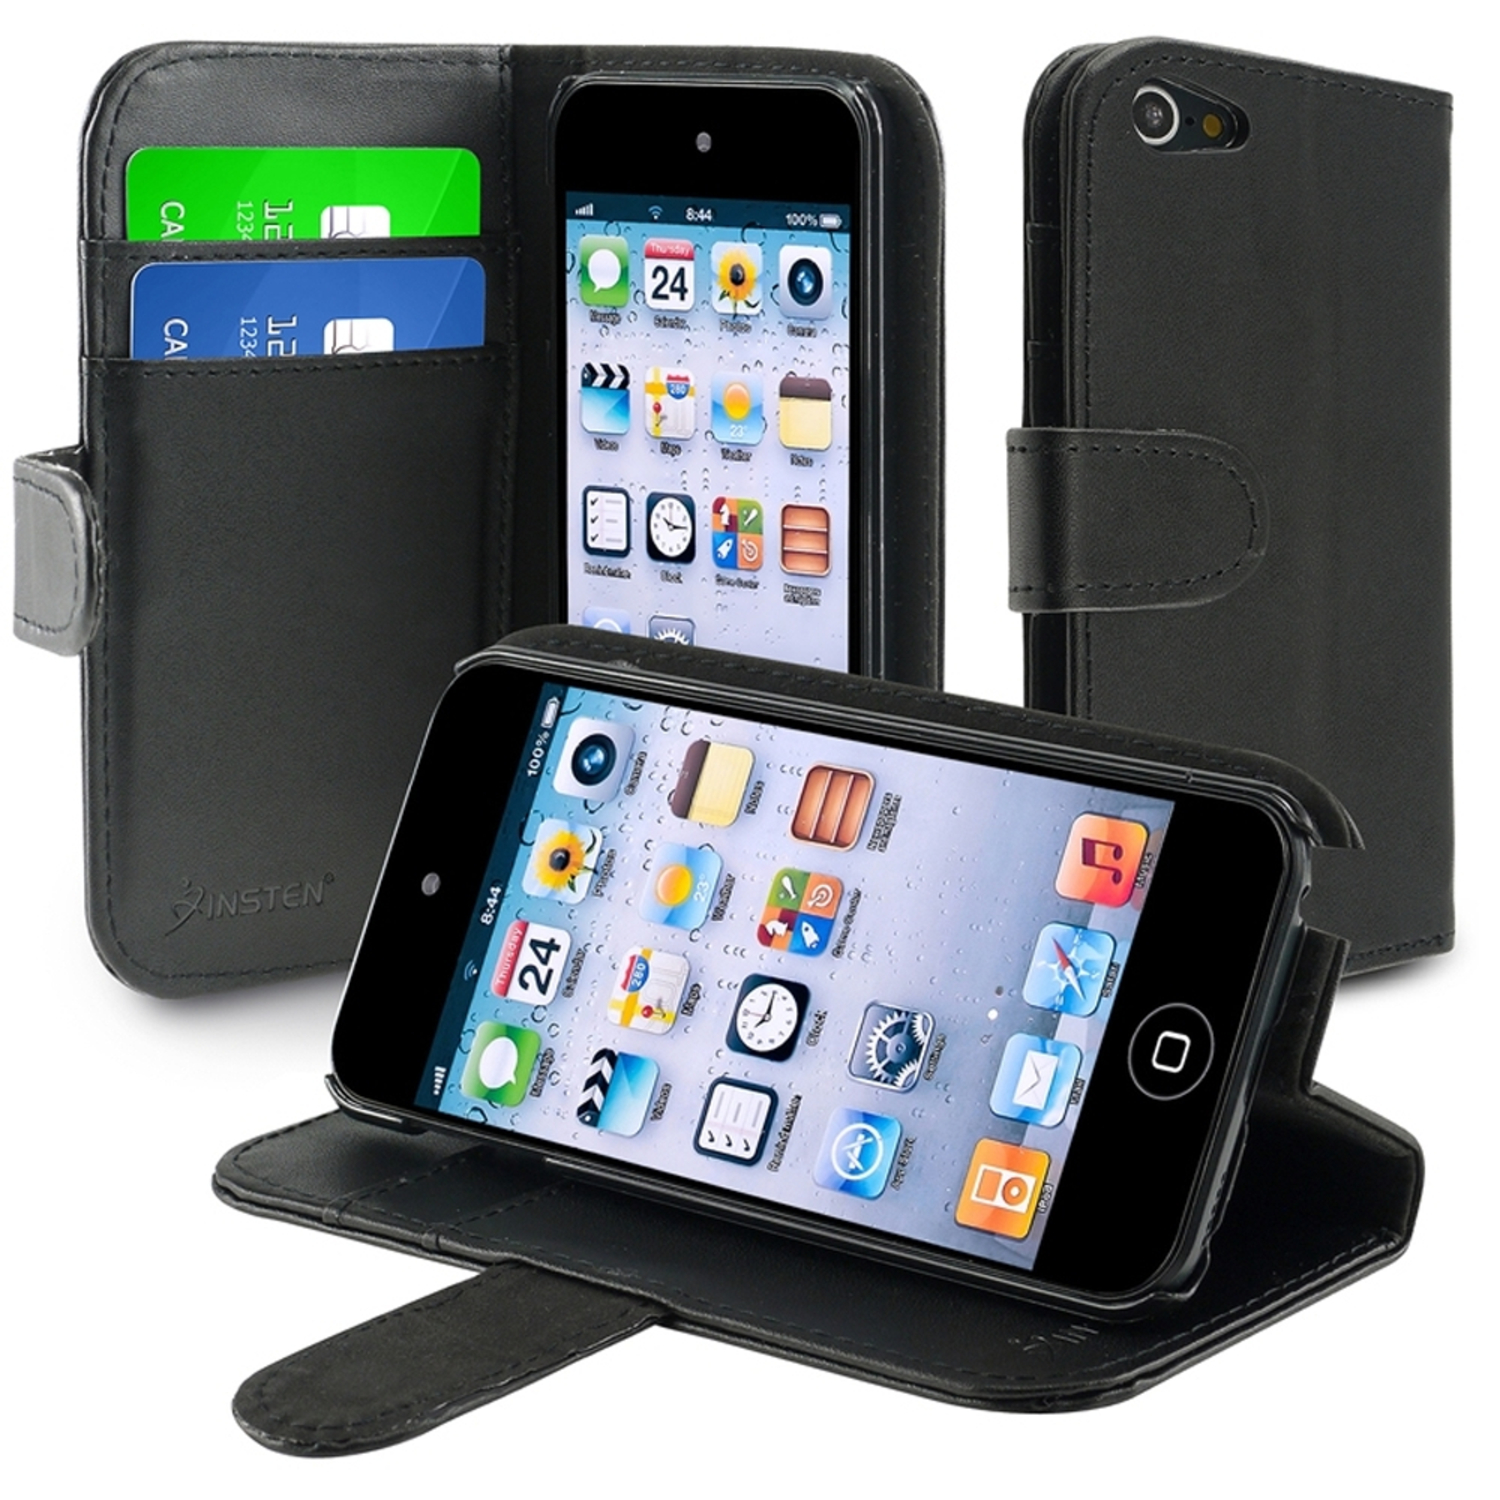 Insten Leather Wallet Case with Card Holder For Apple iPod touch 6 6th 5 5th Gen, Black